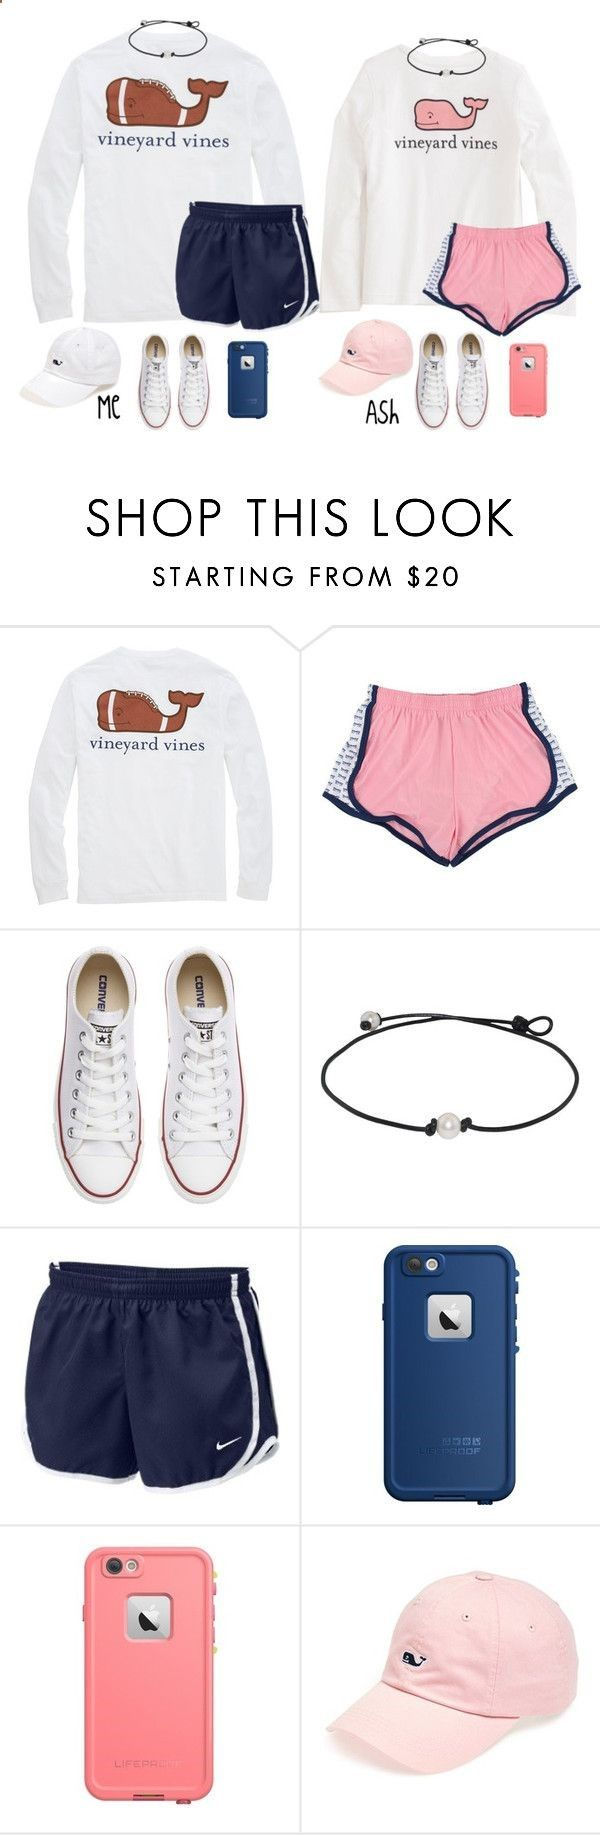 Twin Vineyard Vines outfits by ponyboysgirlfriend ❤ liked on Polyvore featuring Vineyard Vines, Converse, NIKE, LifeProof, womens clothing, women, female, woman, misses and juniors